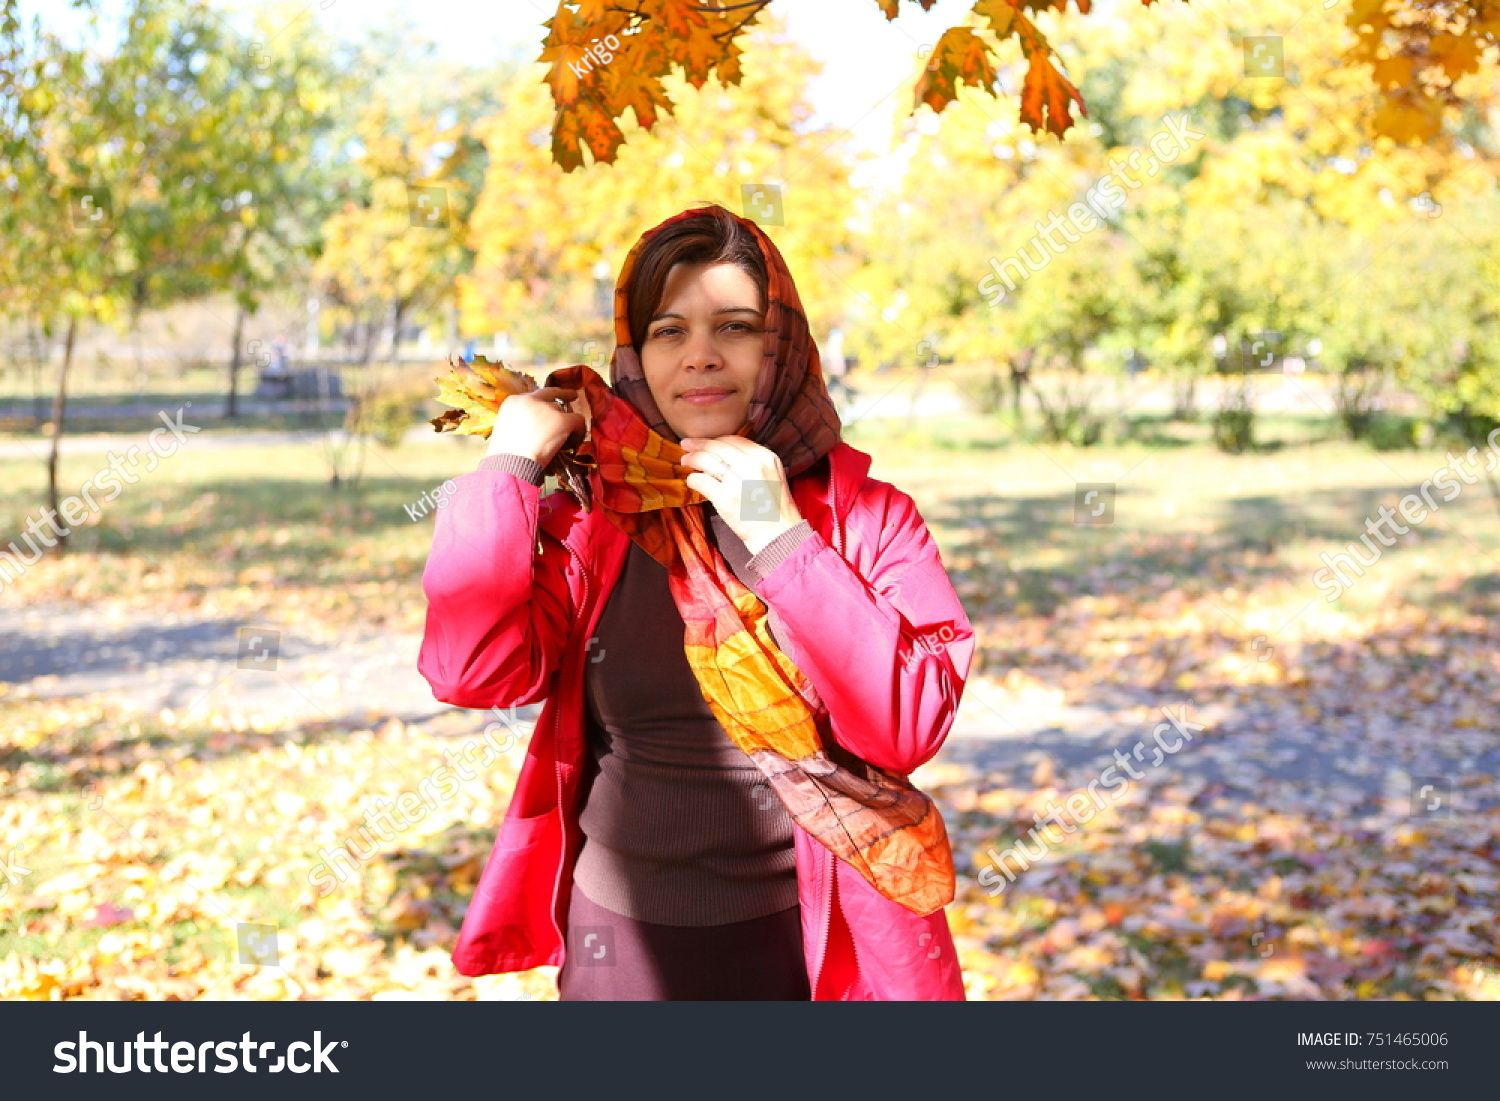 Woman in autumn park #751465006